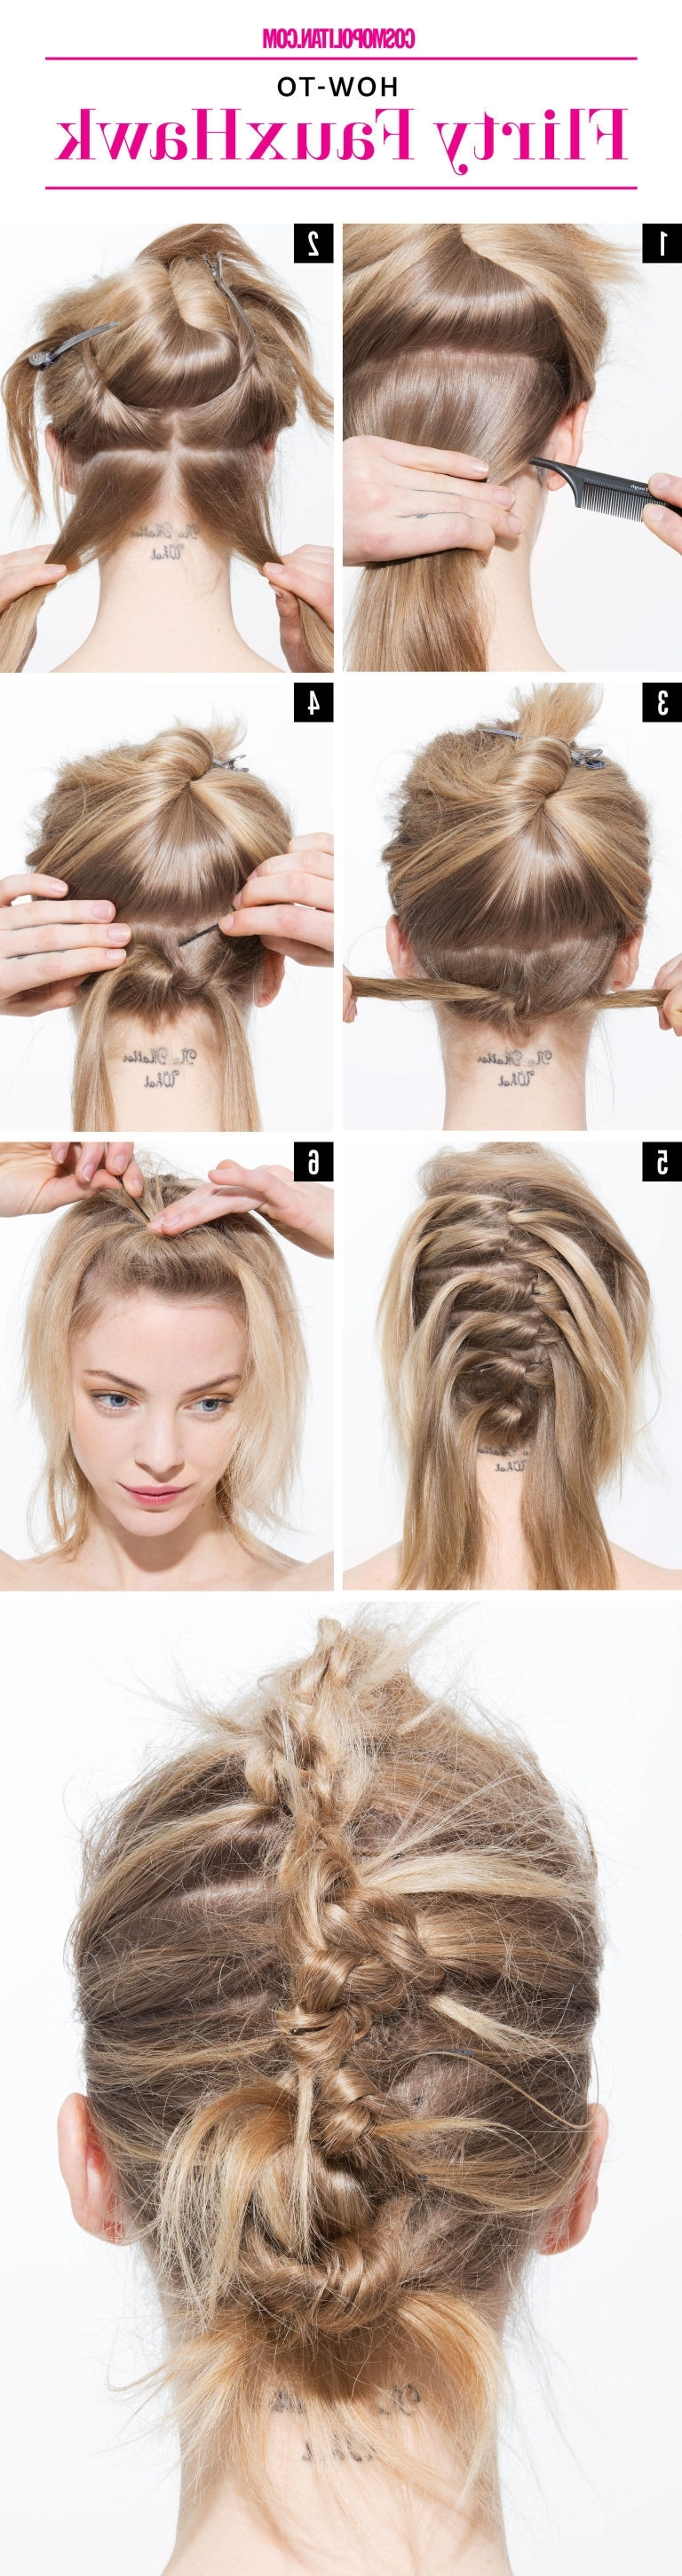 Fancy Ponytail Hairstyles Stock Beautiful Easy Hairstyles Long Hair Intended For Famous Two Tone High Ponytail Hairstyles With A Fauxhawk (View 9 of 20)